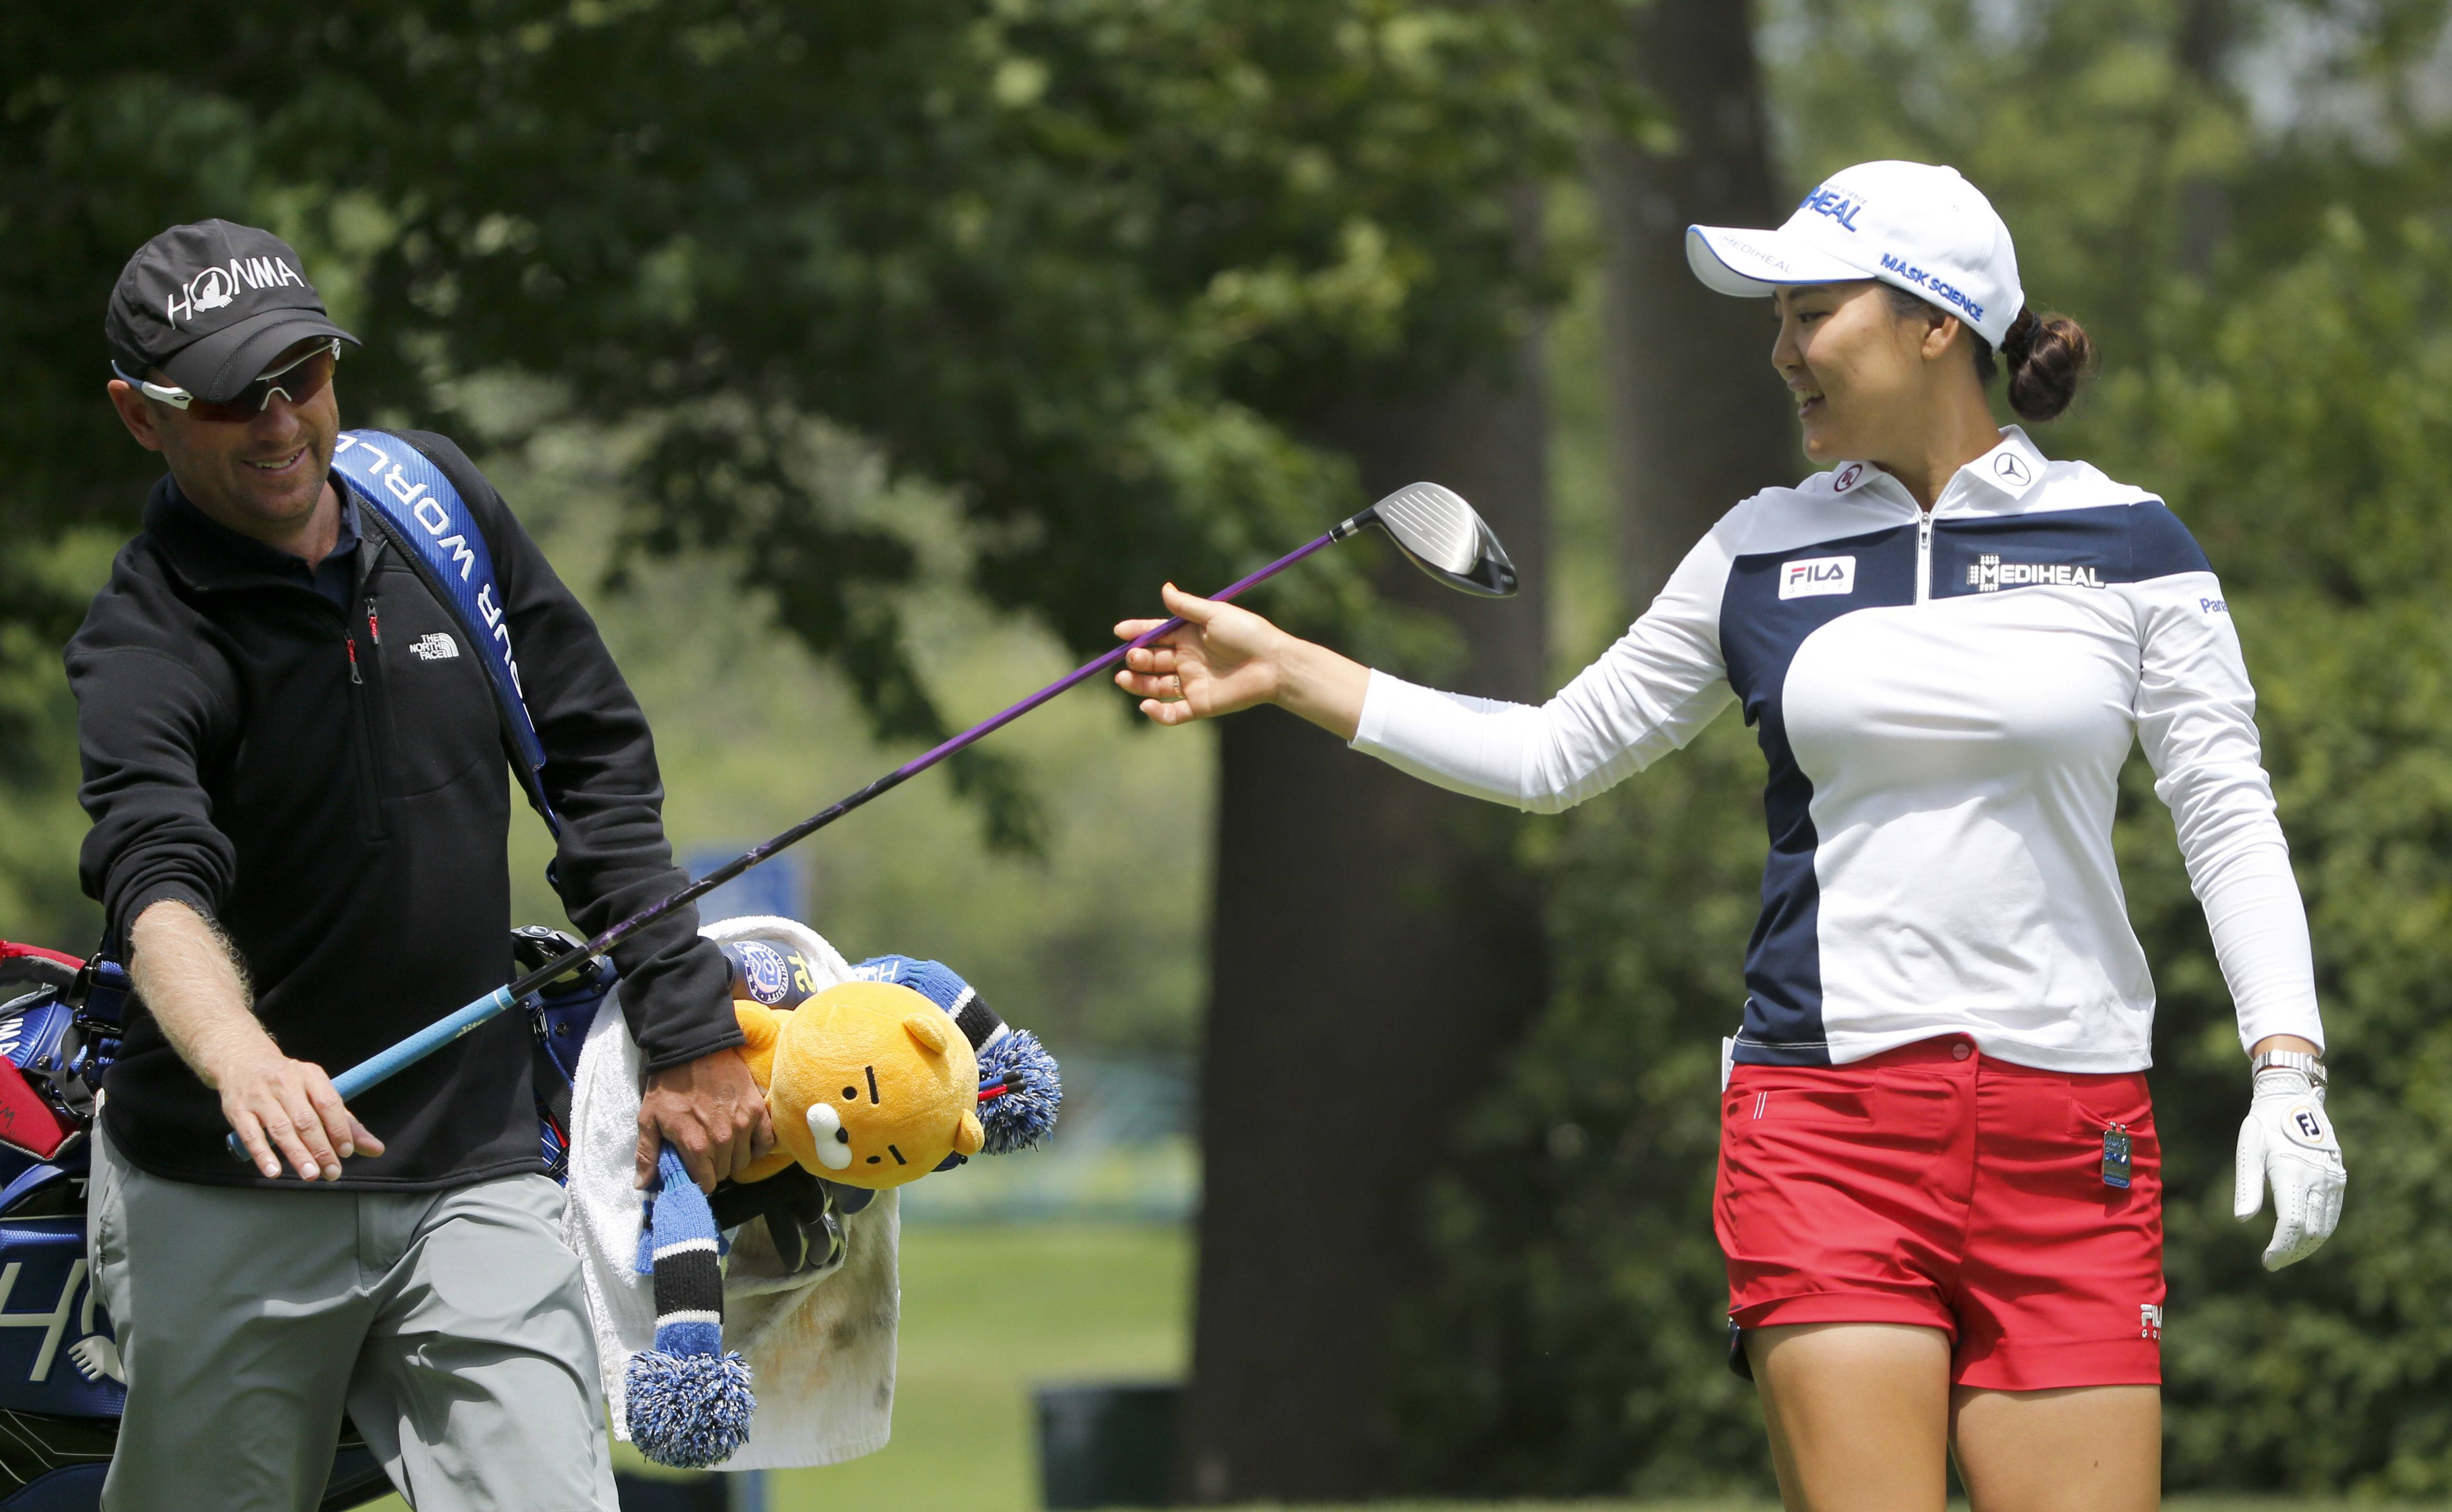 So Yeon Ryu of South Korea is the new No. 1 ranked player on the LPGA Tour. Ryu took part in a practice round Wednesday to prepare for the Women's PGA Championship at the Olympia Fields Country Club.